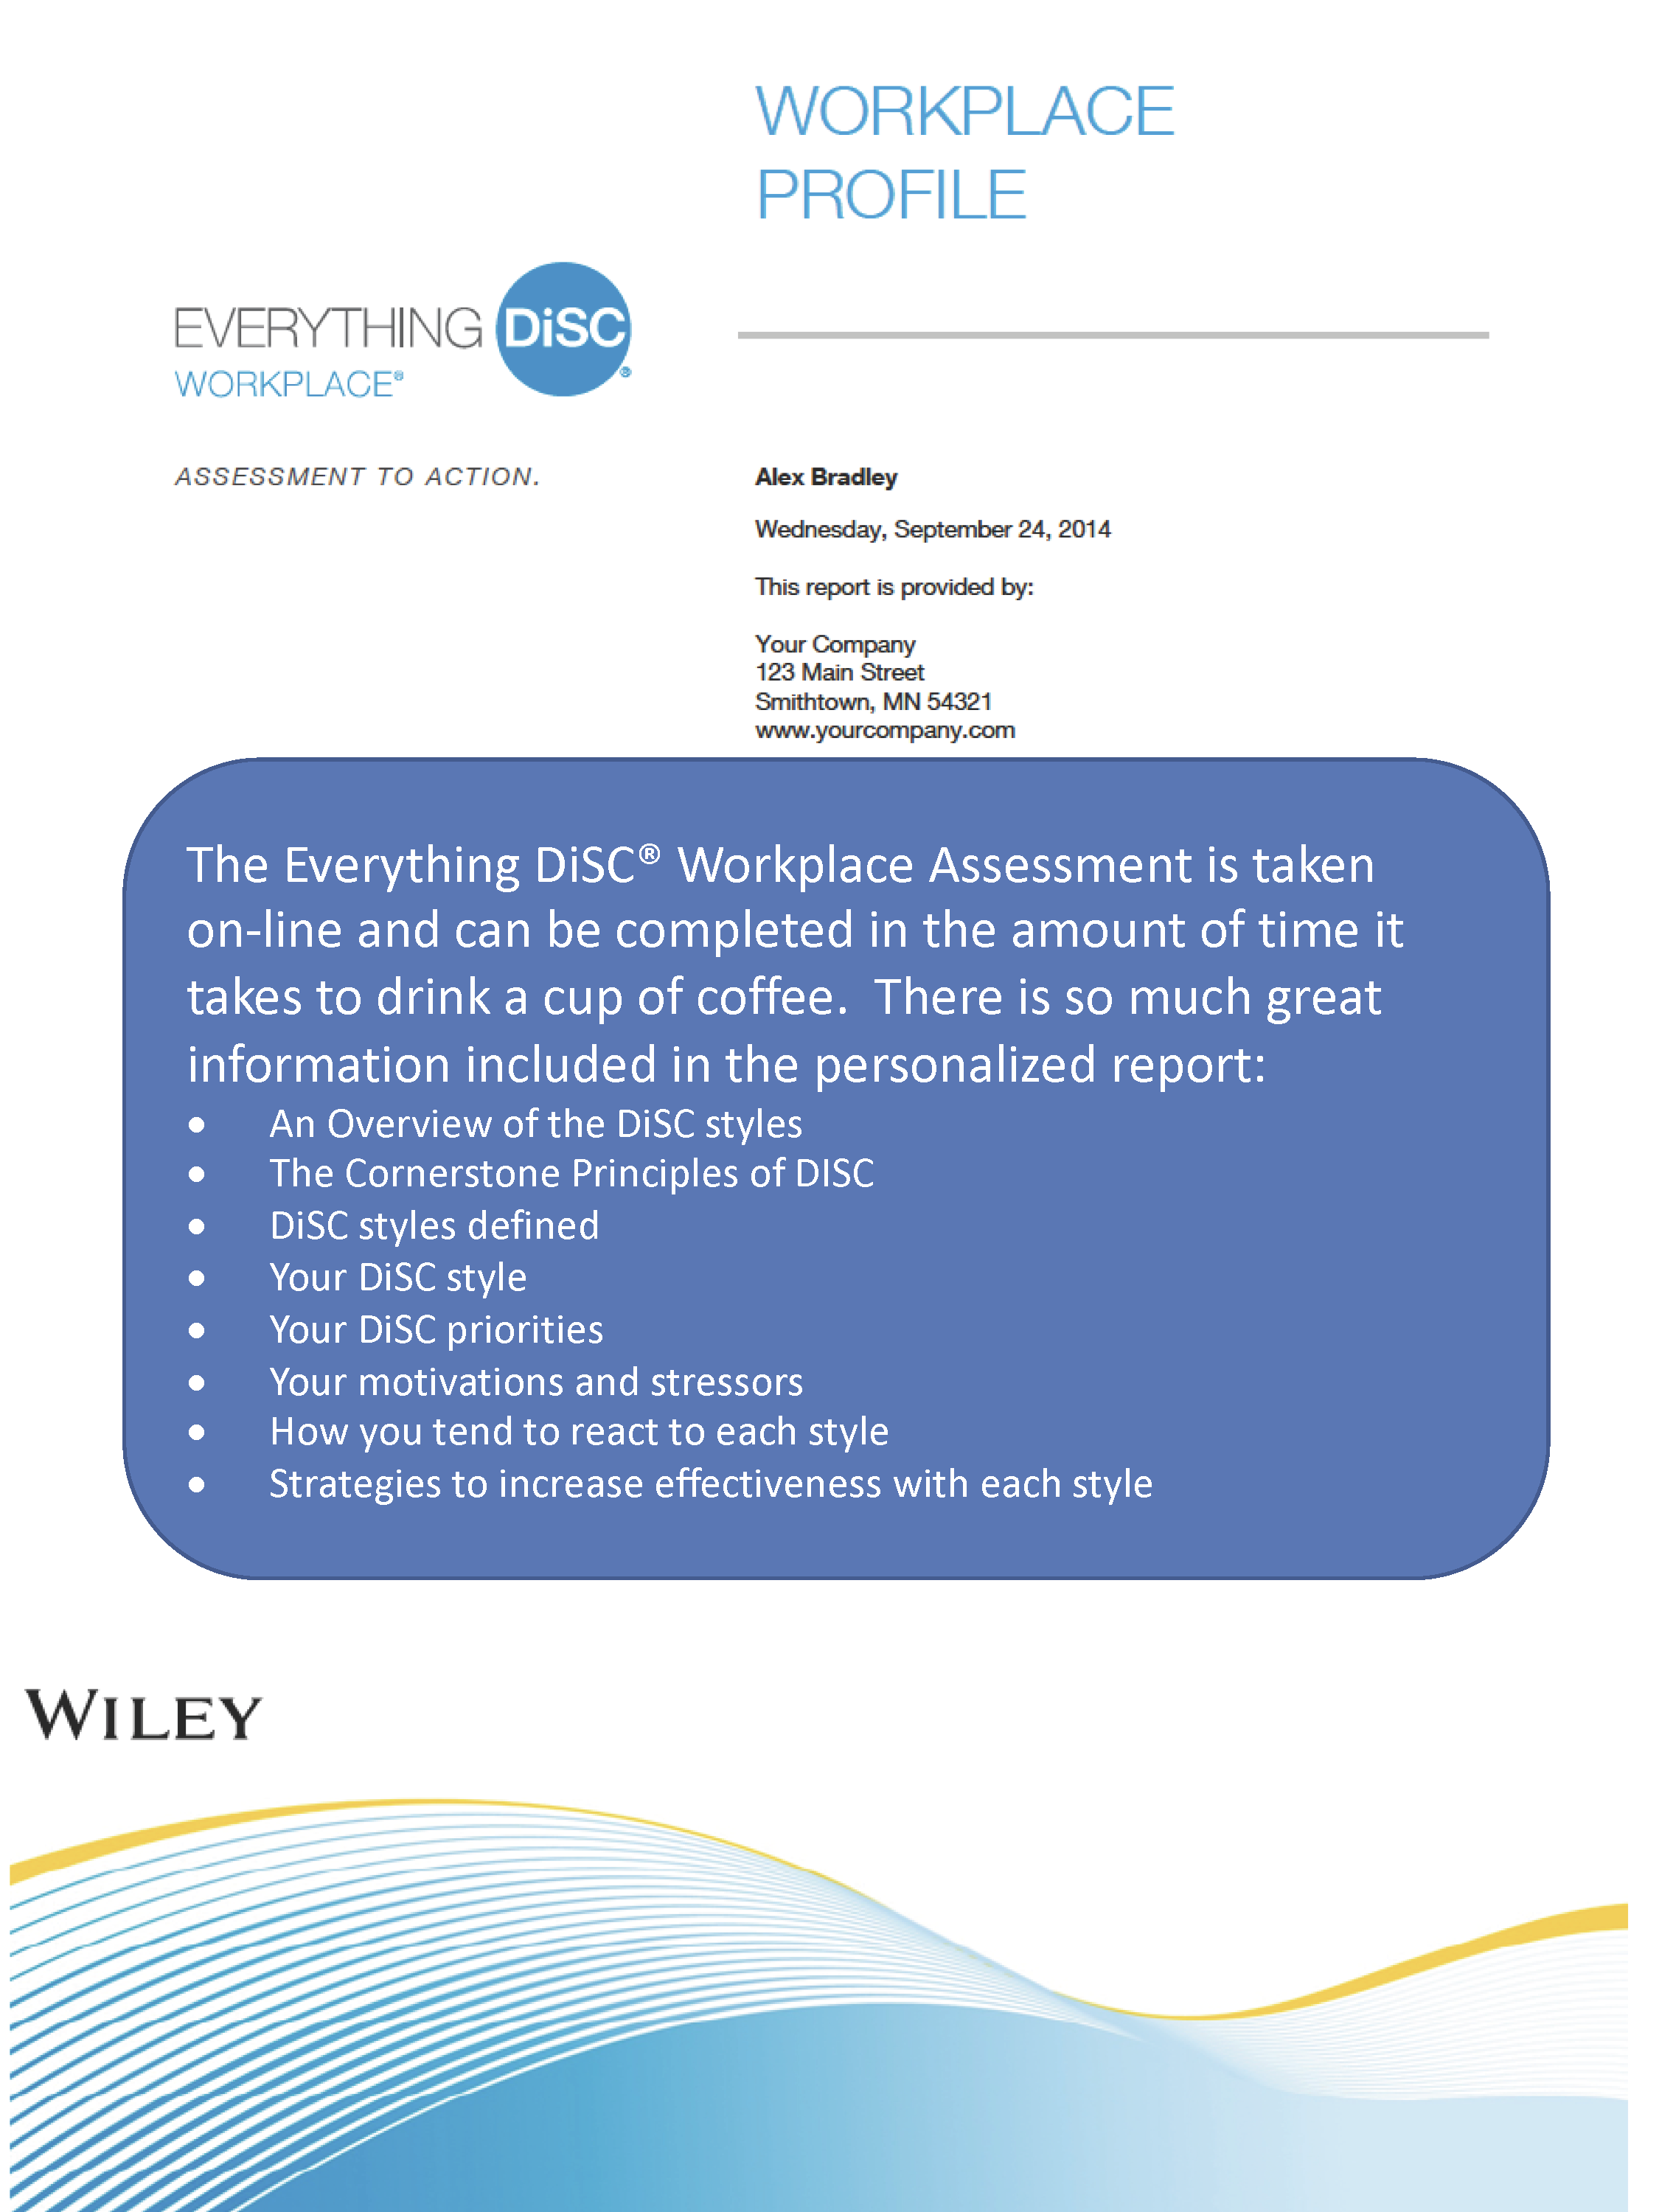 Everything DiSC Workplace Report Sample